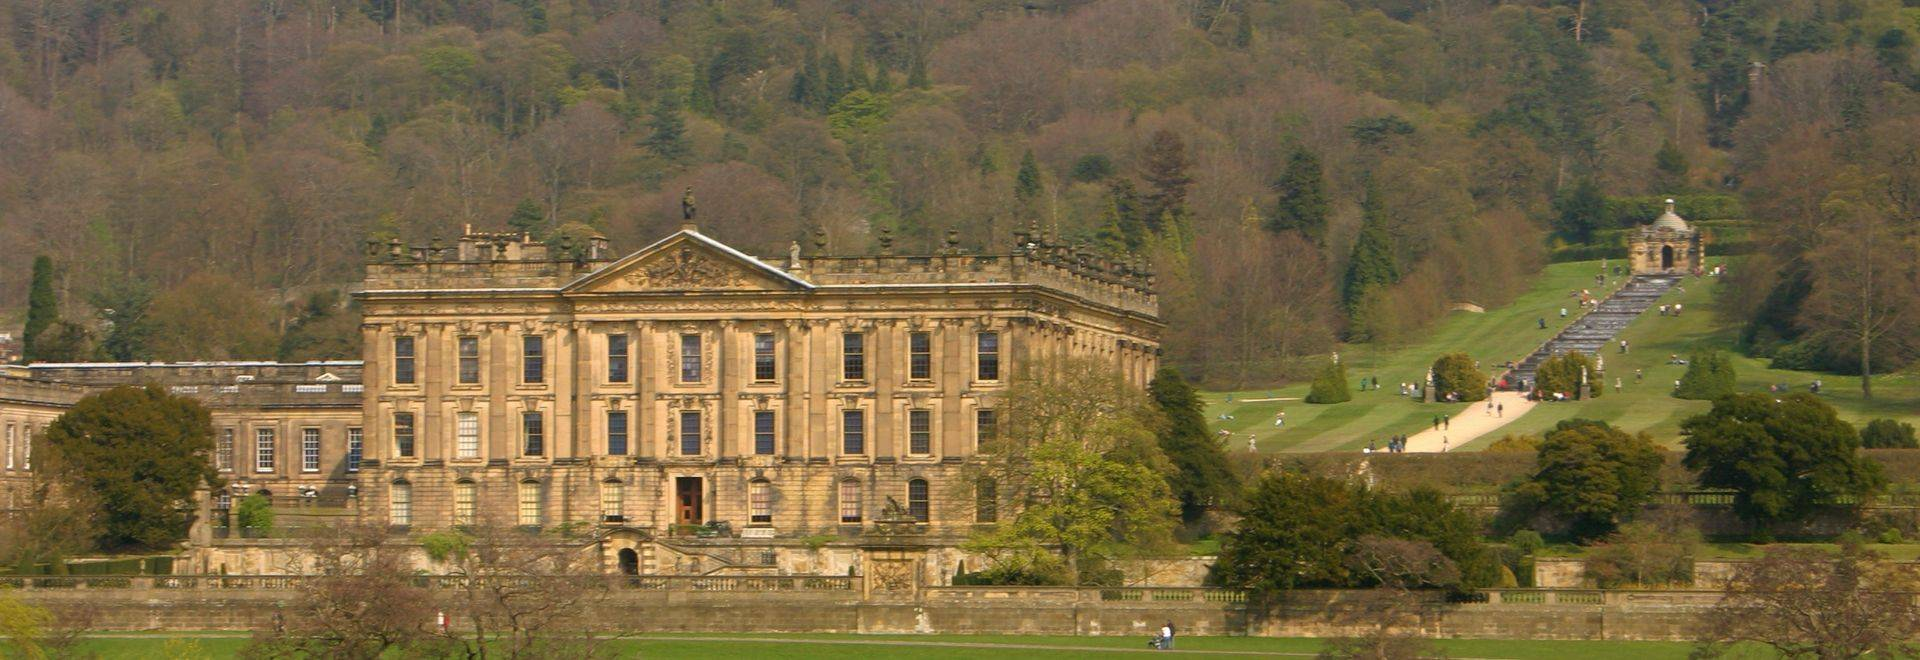 Shutterstock 310717 Chatsworth Estate